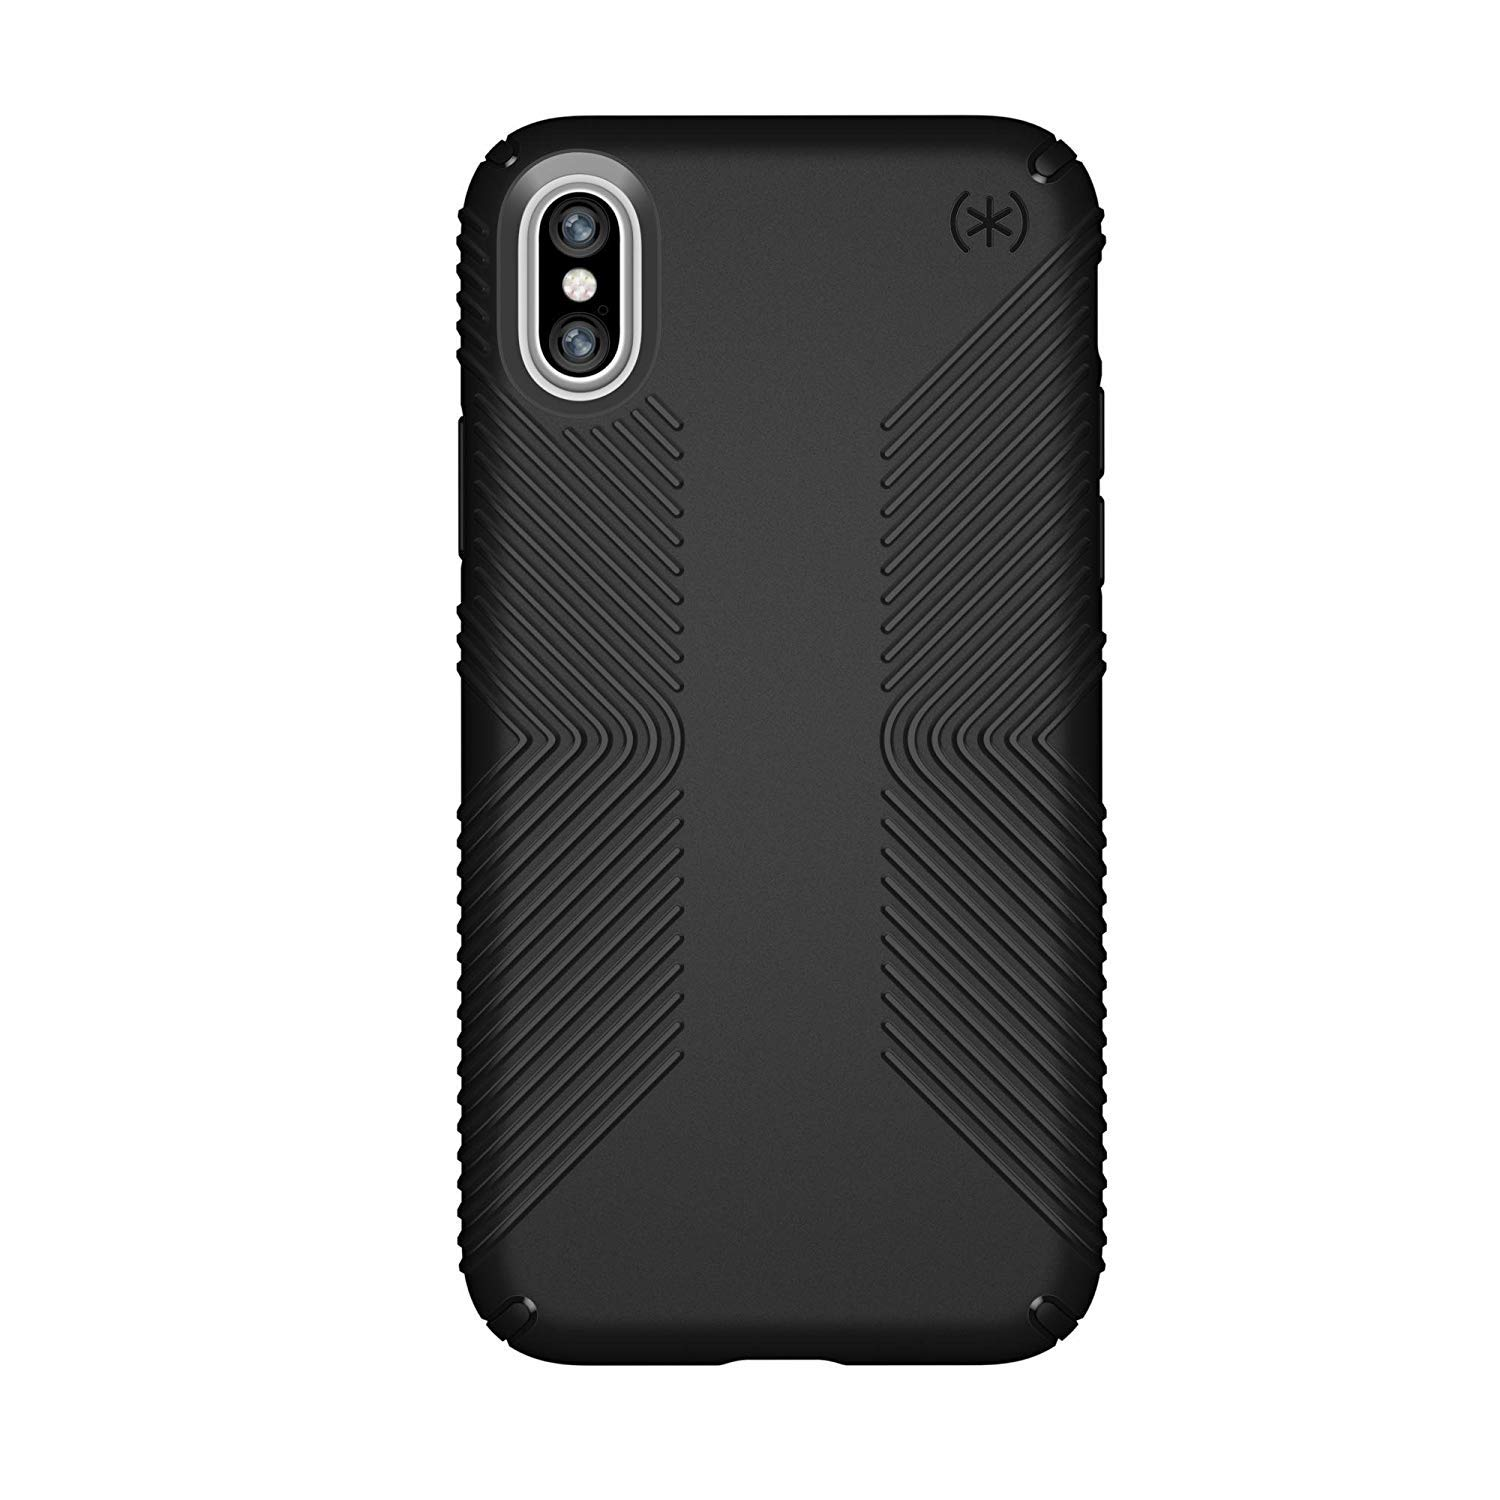 Speck Products Presidio Grip Case for iPhone XS/iPhone X, Black/Black